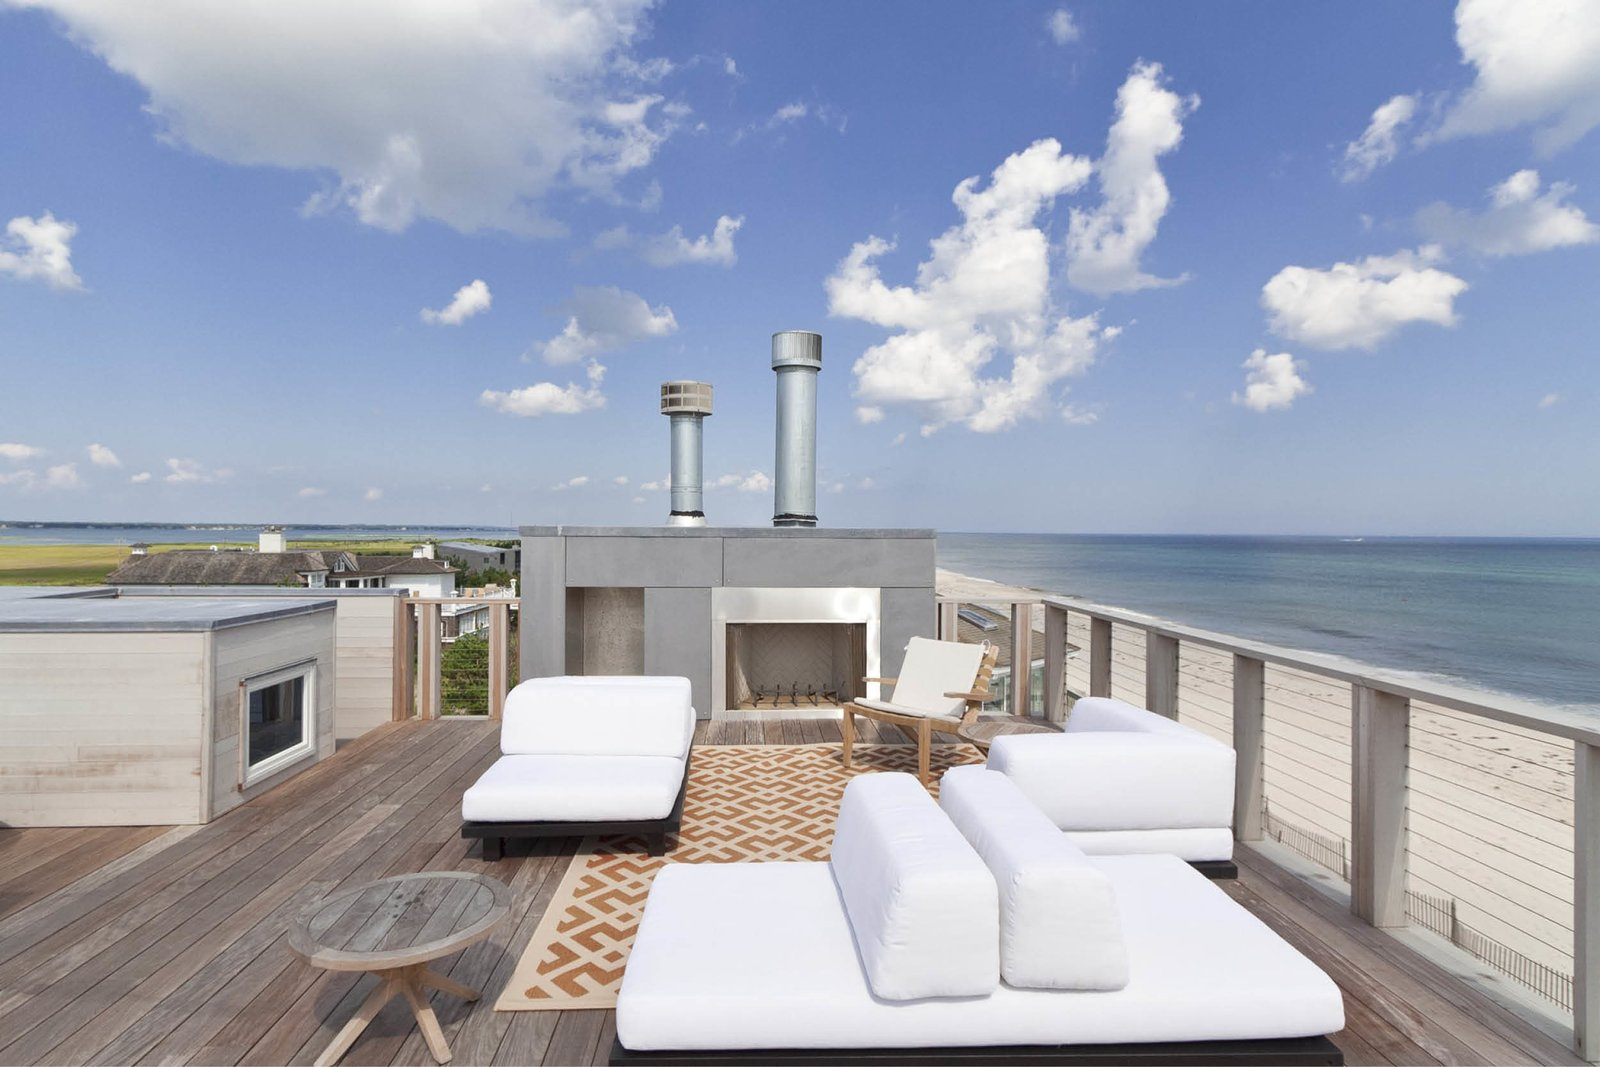 Roof deck/Outdoor living space Tagged: Rooftop, Wire, Wood, Decking, Horizontal, Wood, and Exterior.  Best Exterior Wood Photos from Dune Road Beach House